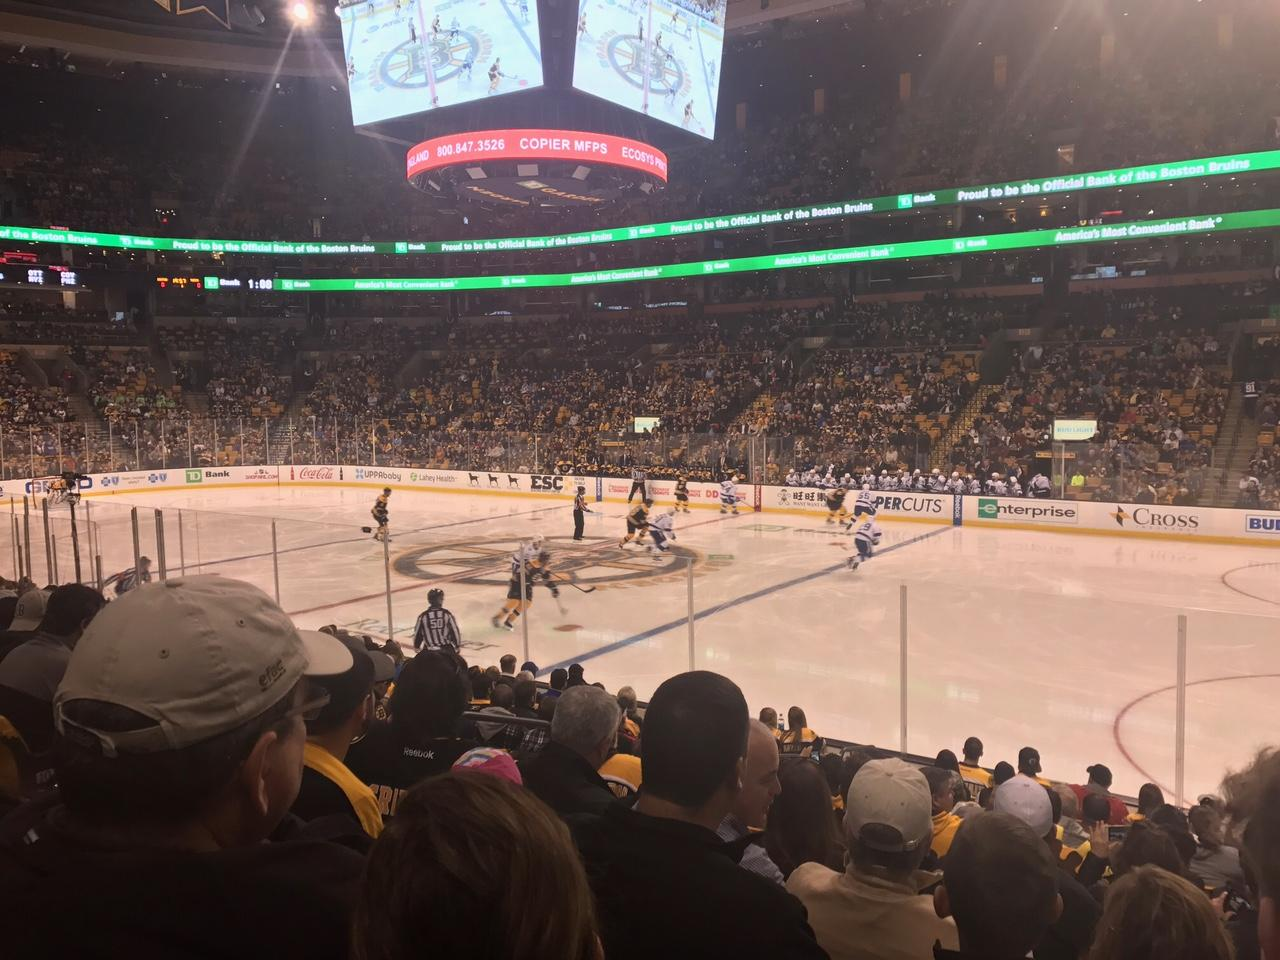 TD Garden Section Loge 10 Row 13 Seat 9